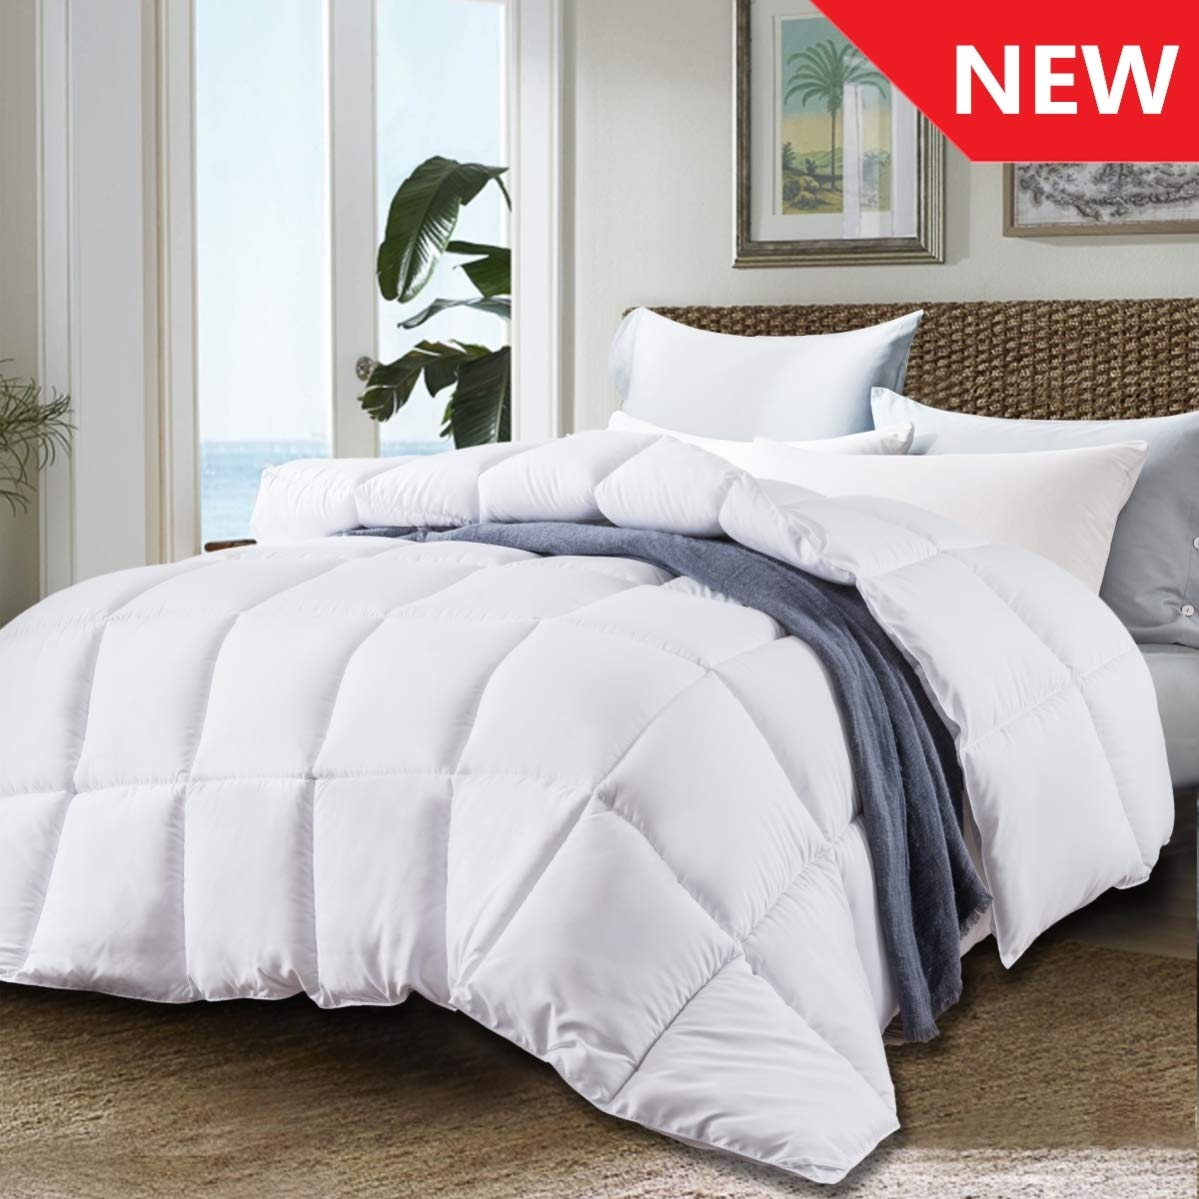 JURLYNE Twin White Comforter Quilted Reversible Duvet Insert, Hypoallergenic Breathable for All Season, Fluffy Light-Weighted Down Alternative Comforter by JURLYNE